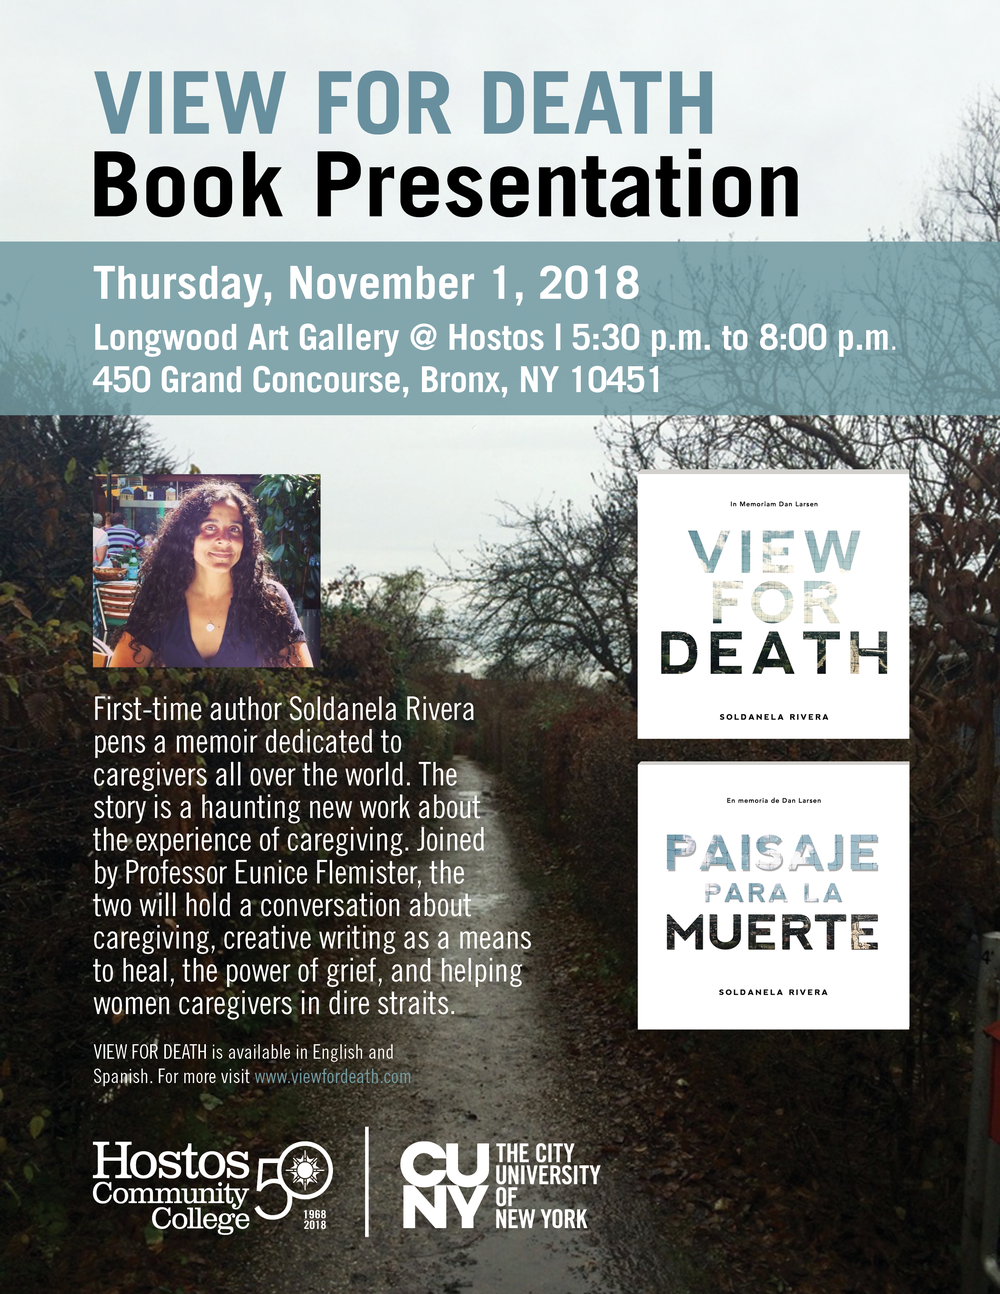 View for Death  Book Presentation HCC 100118 JRGV5.png